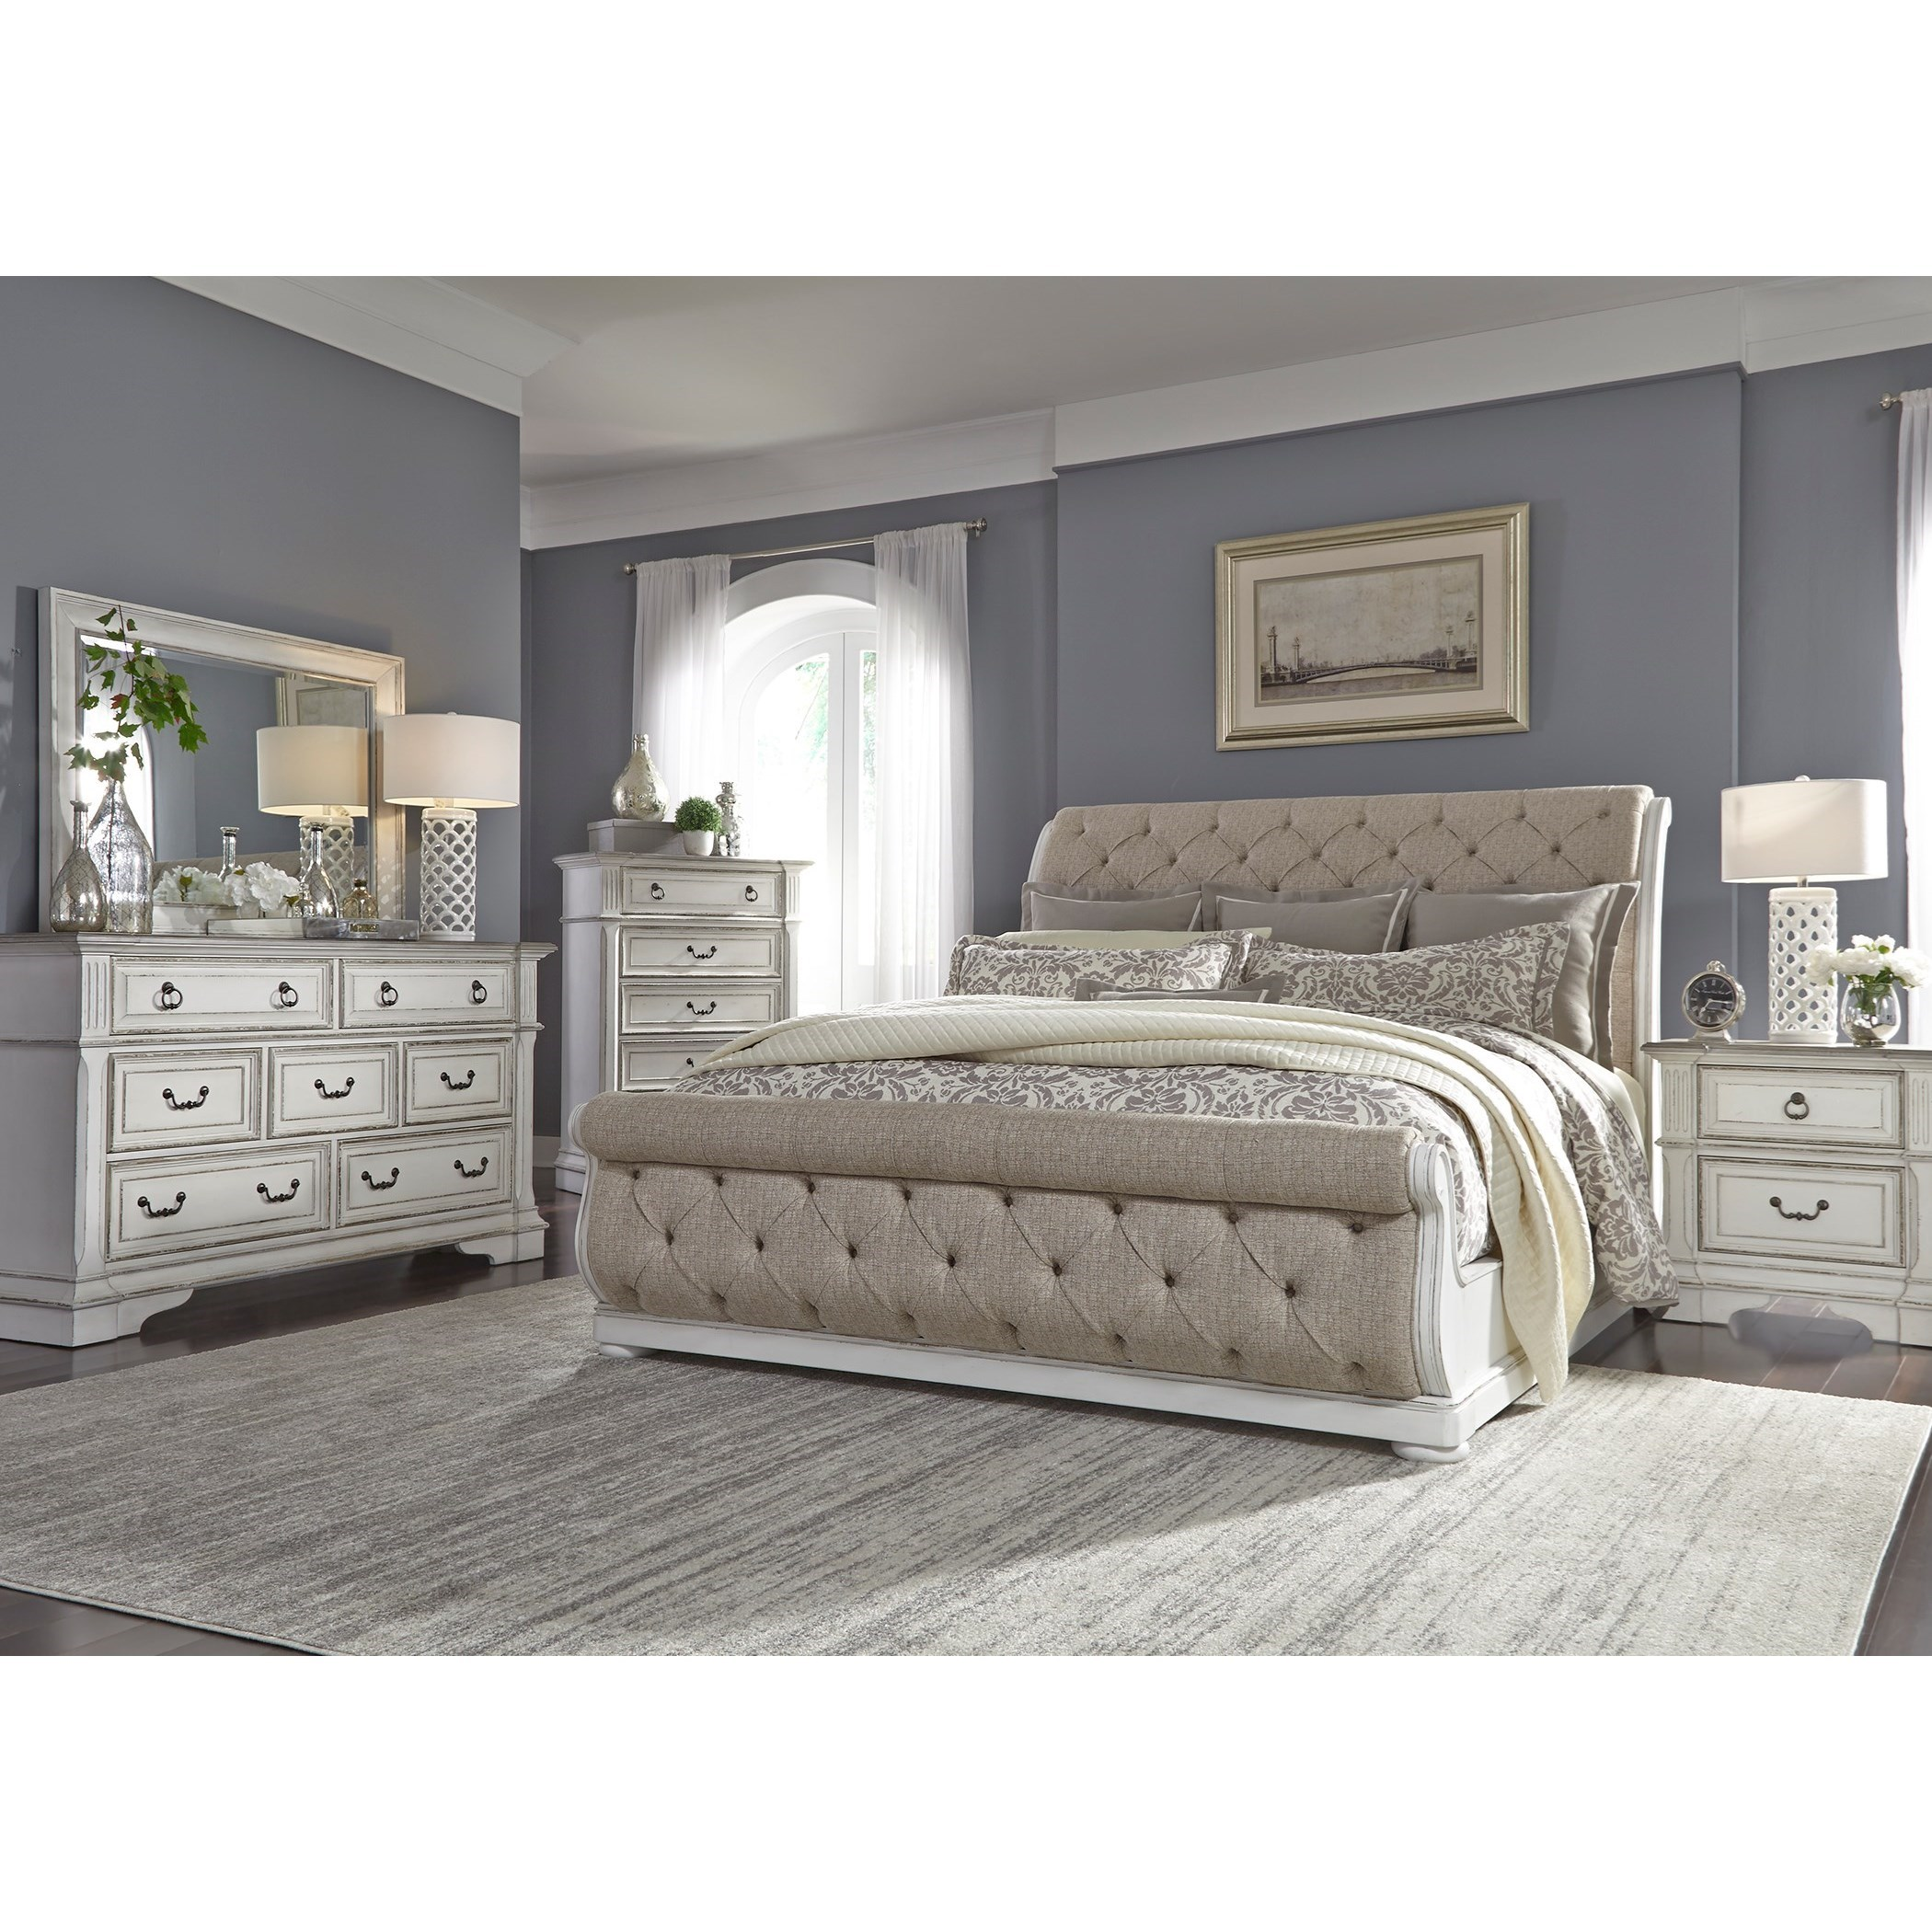 Abbey Park Queen Bedroom Group by Liberty Furniture at Standard Furniture